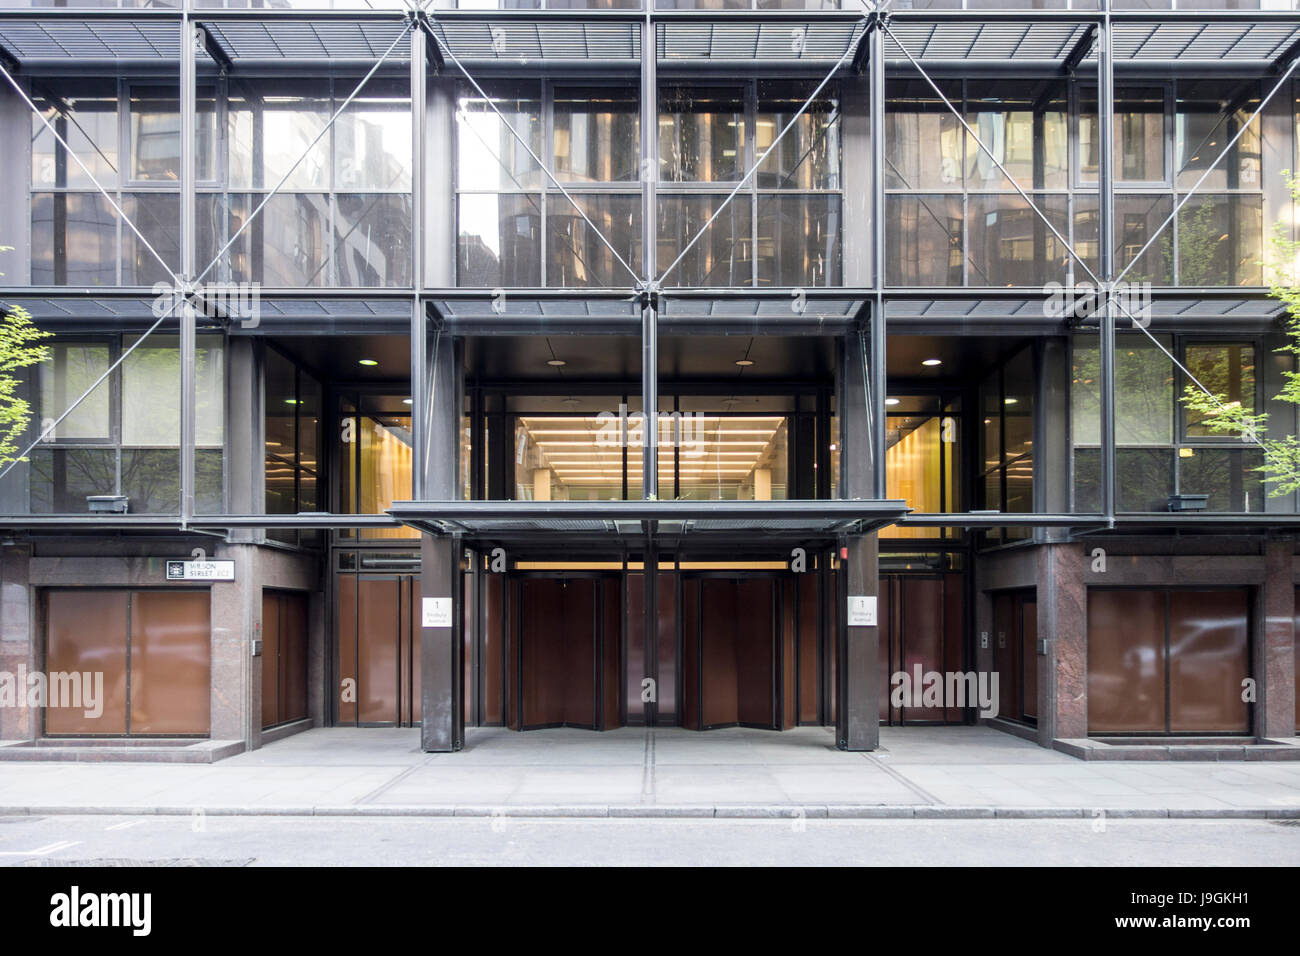 Former UBS head office 1 Finsbury Avenue, Broadgate, designed by Peter Foggo, Arup Associates, now closed for refurbishment. - Stock Image